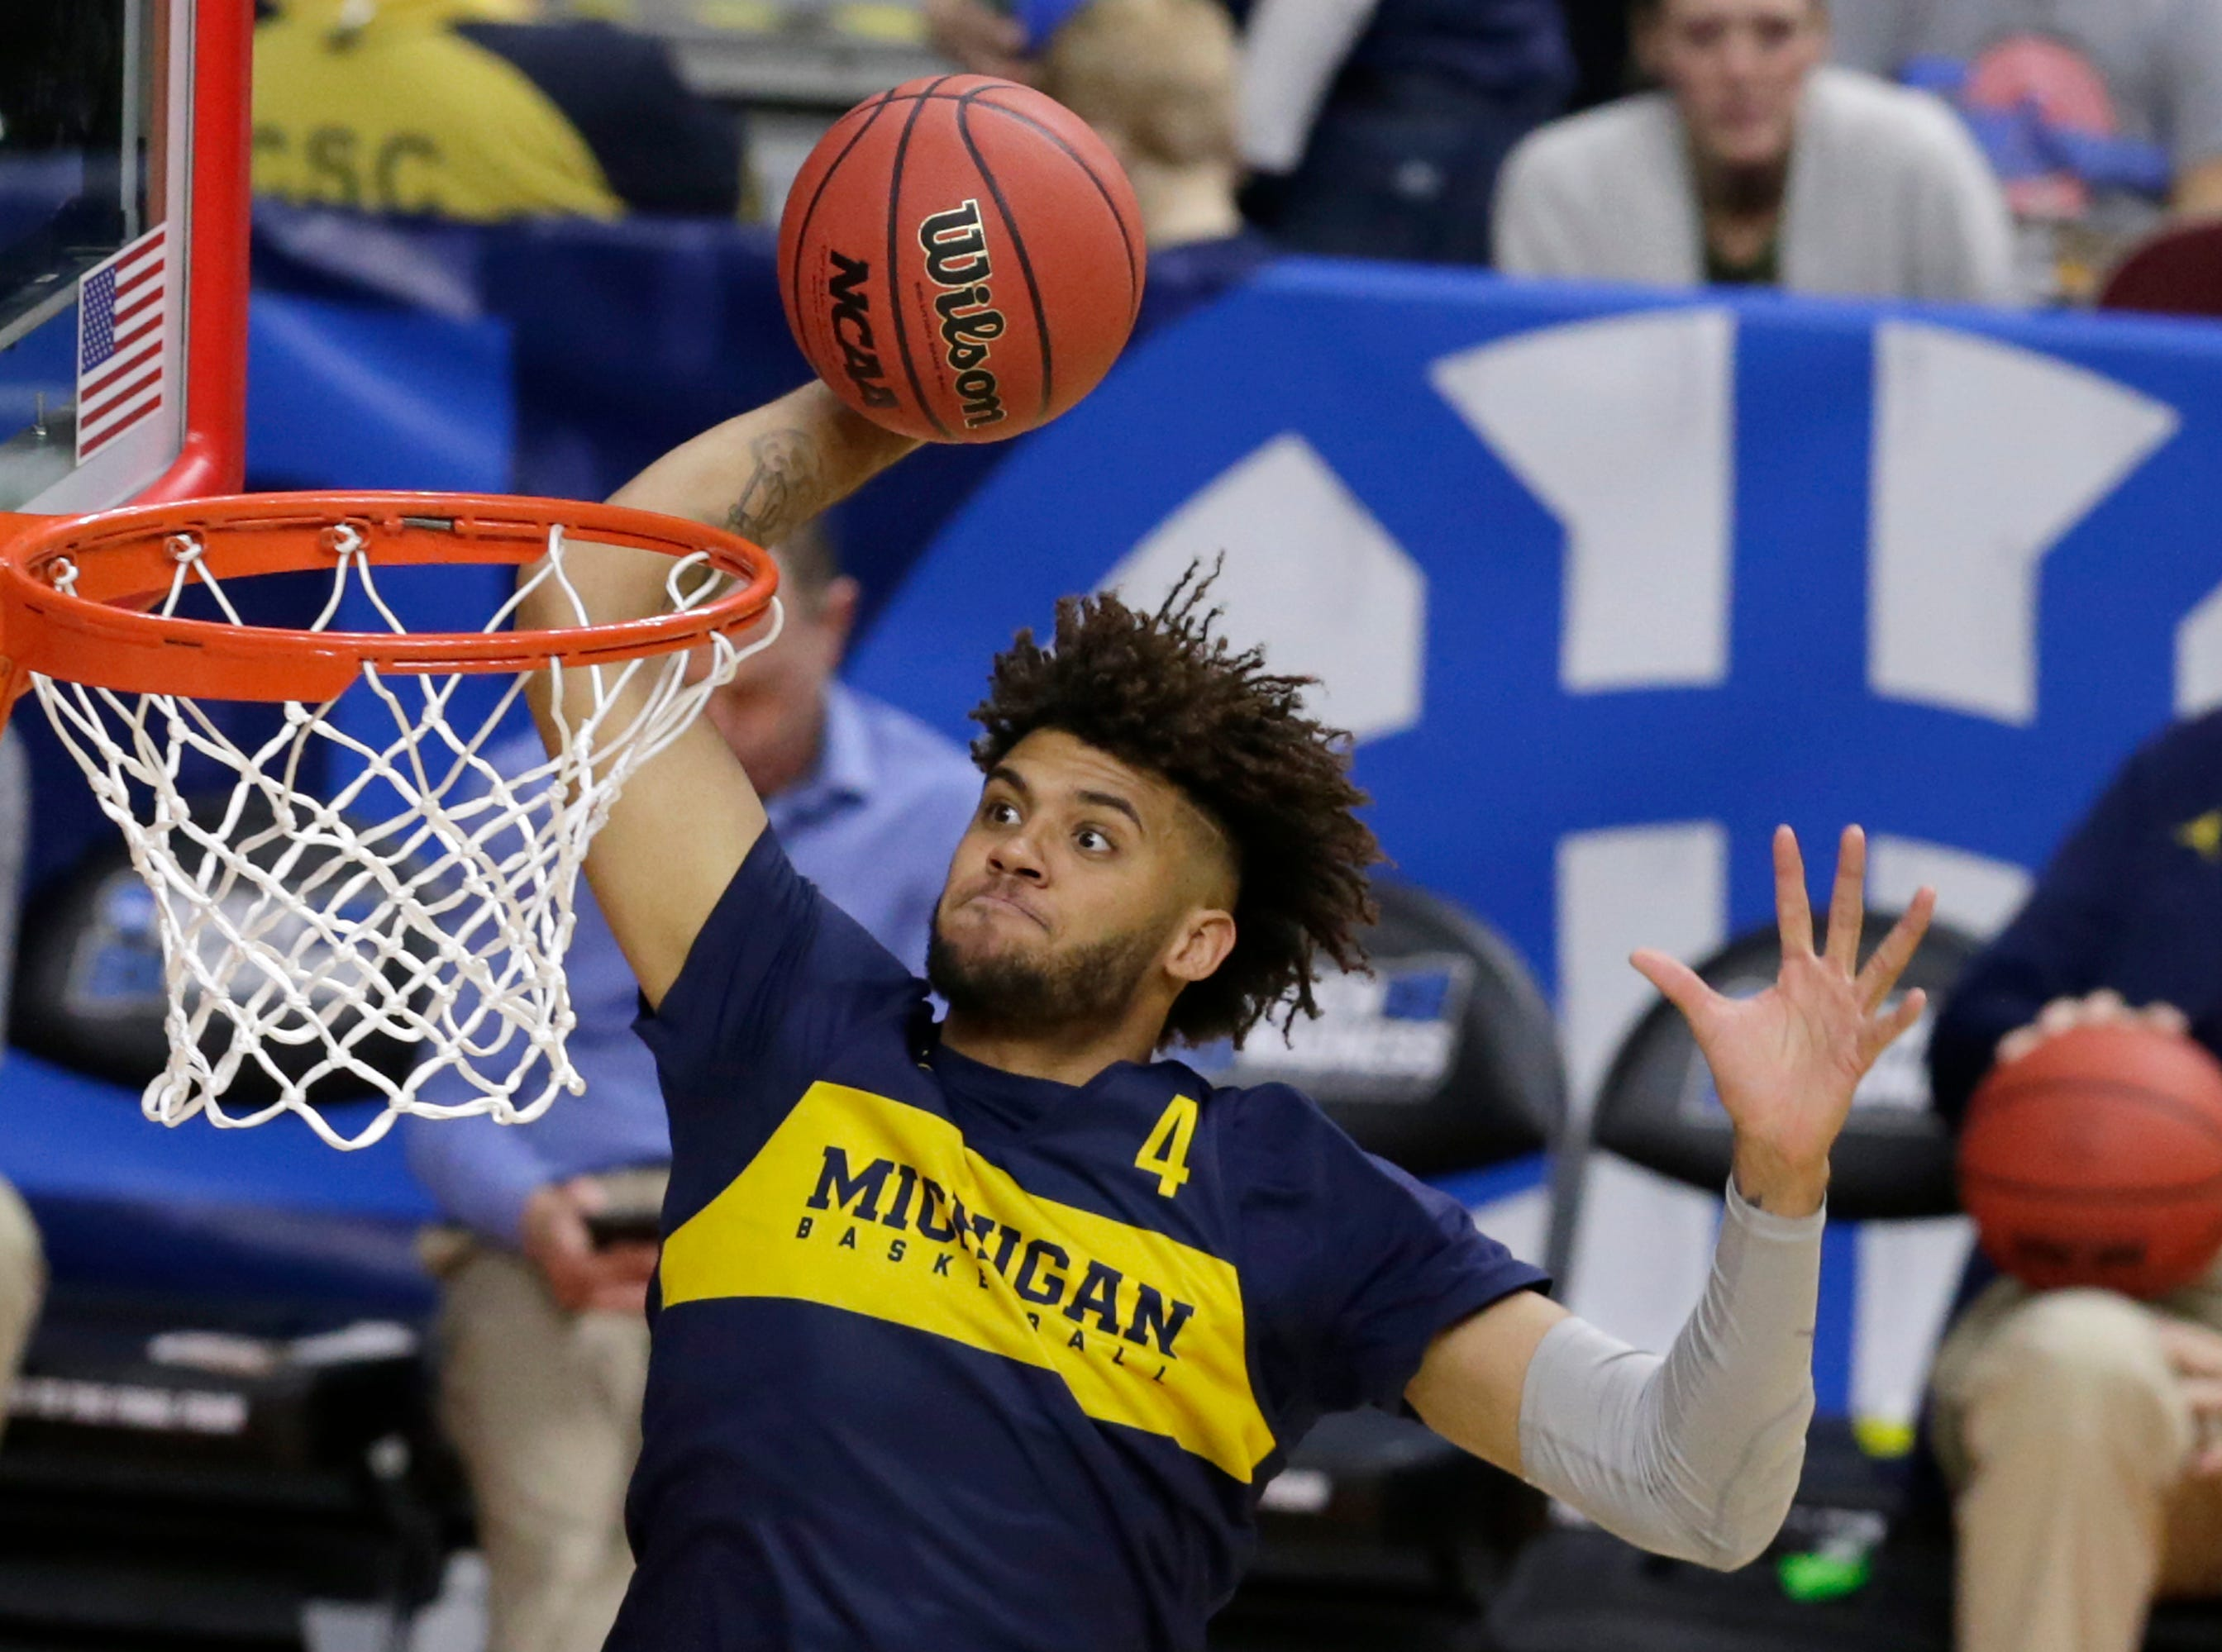 Michigan's Isaiah Livers (4) dunks during practice at the NCAA college basketball tournament in Des Moines, Iowa, Wednesday, March 20, 2019. (AP Photo/Nati Harnik)